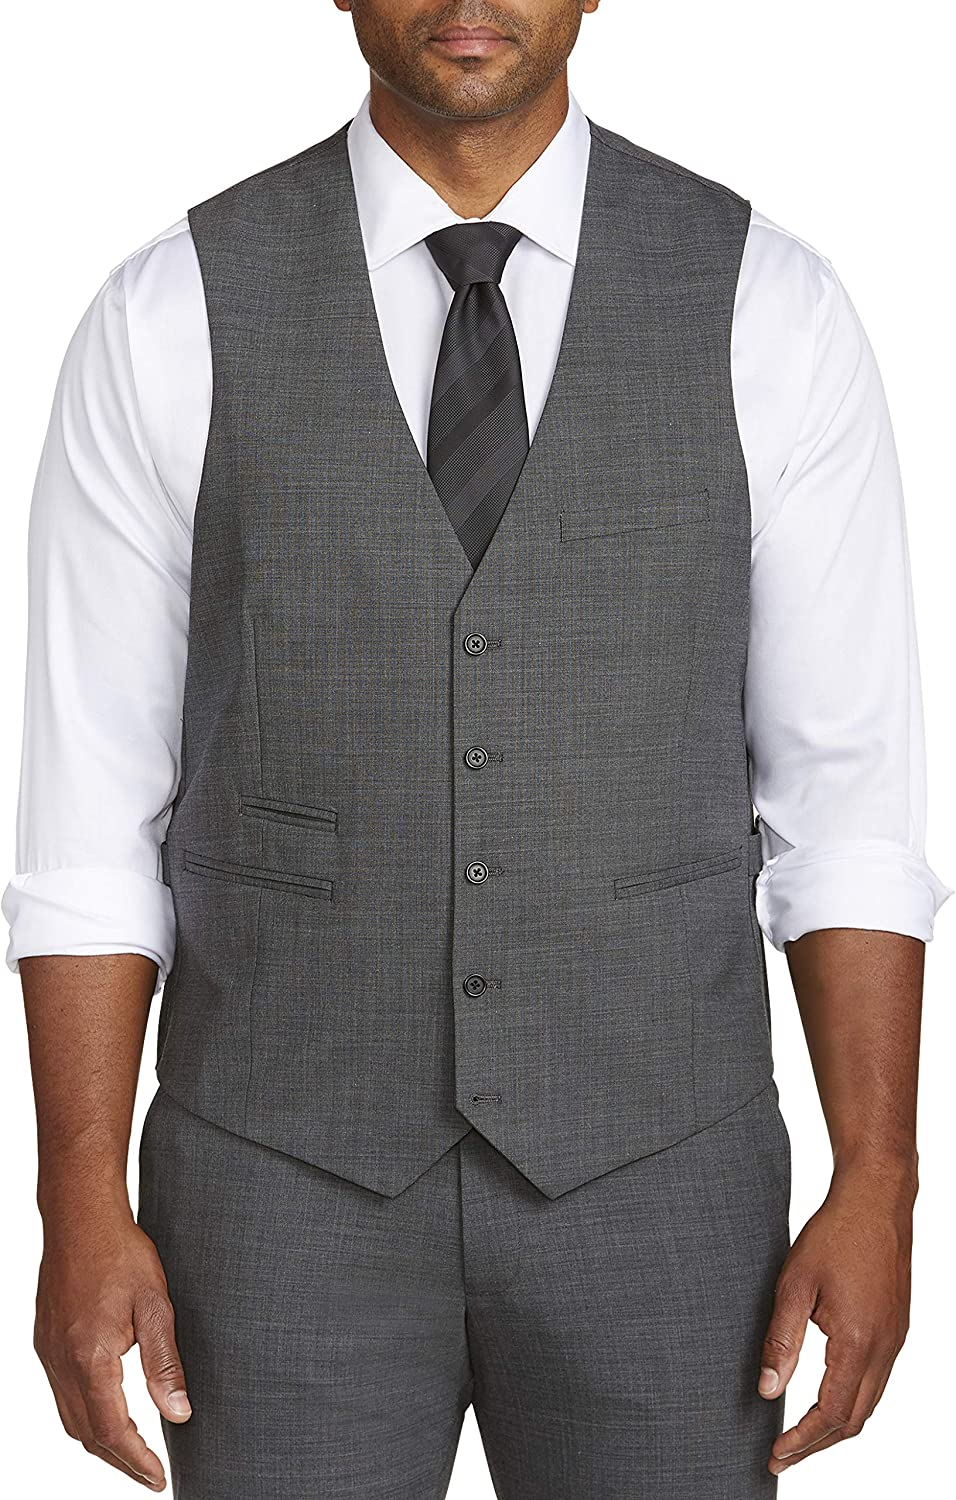 Synrgy by DXL Big and Tall Performance Suit Vest, Grey